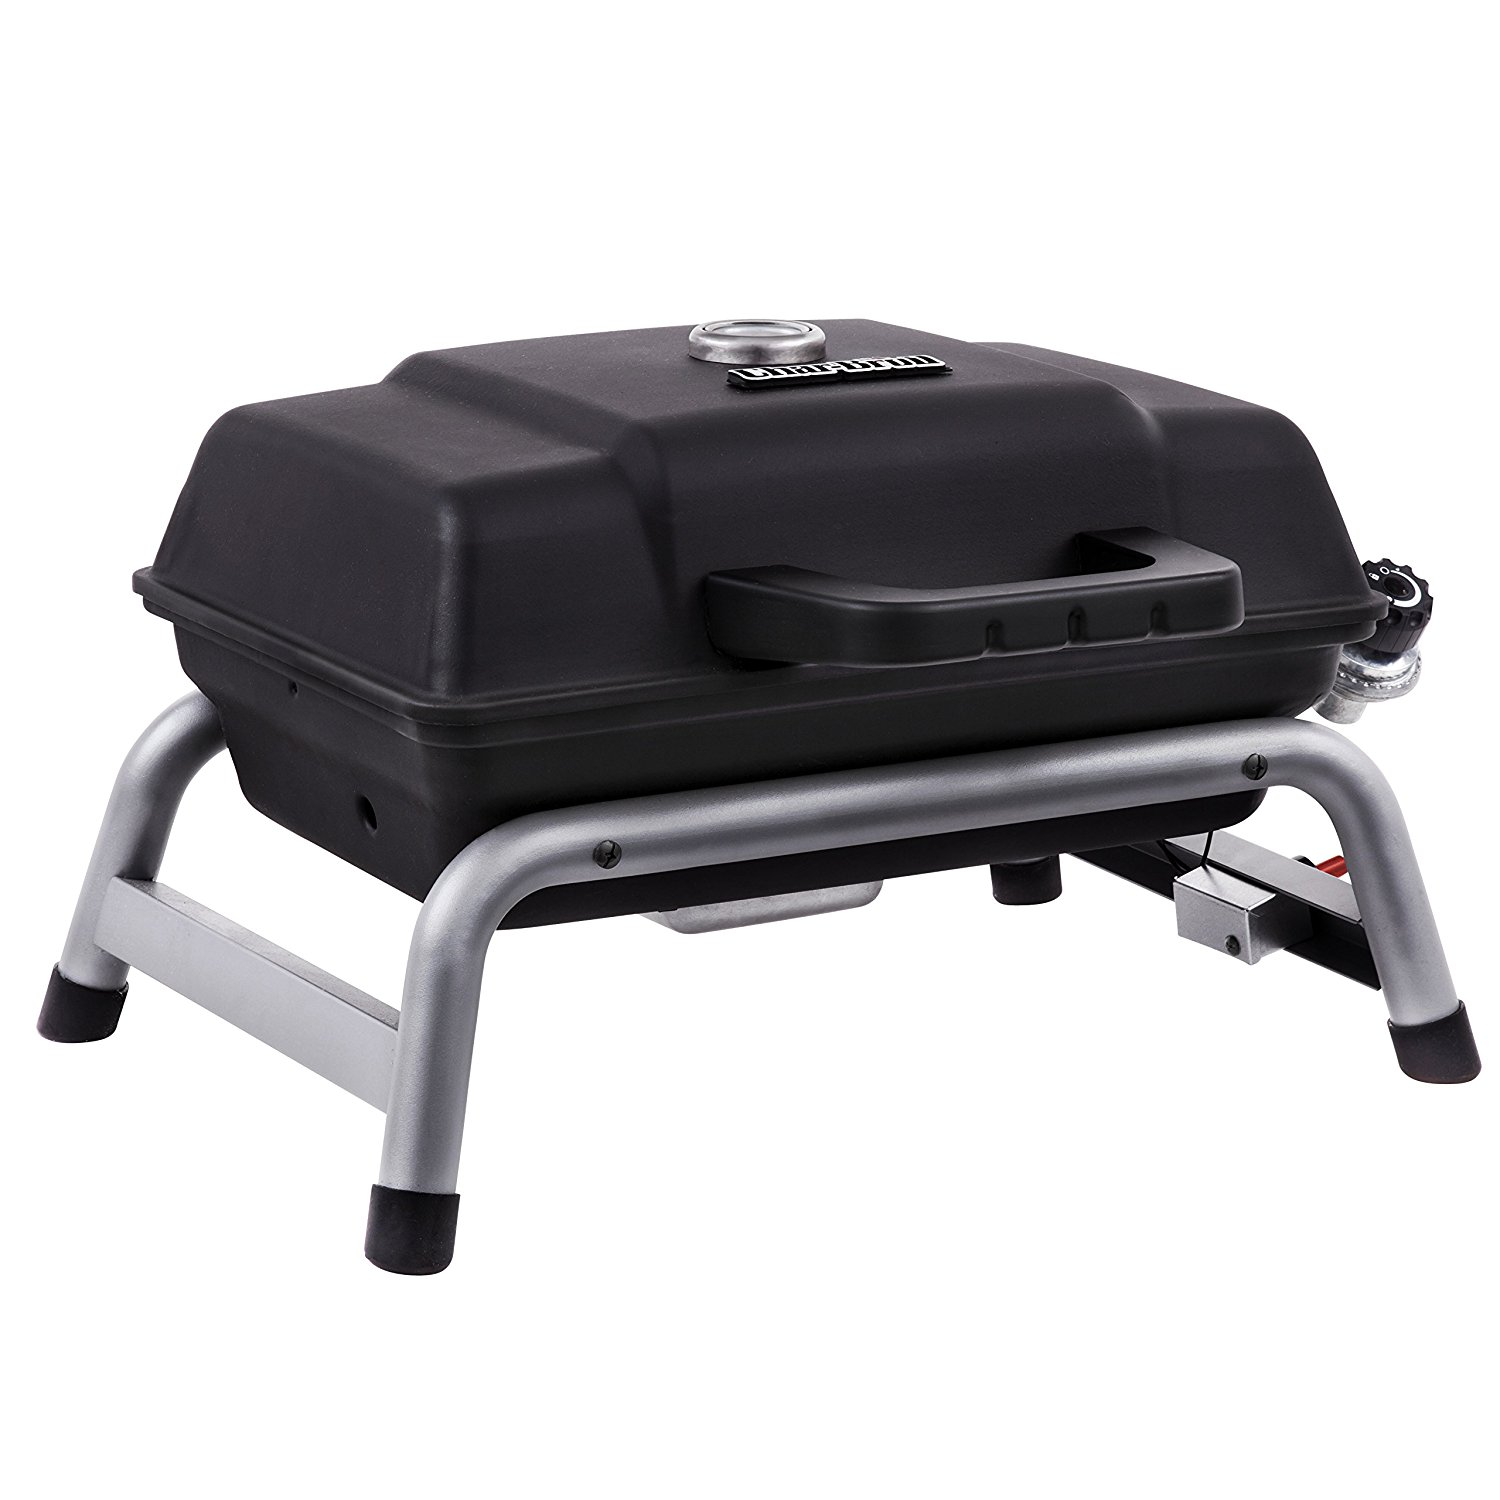 Char-Broil Portable Gas Grill 240 by Gas Grills